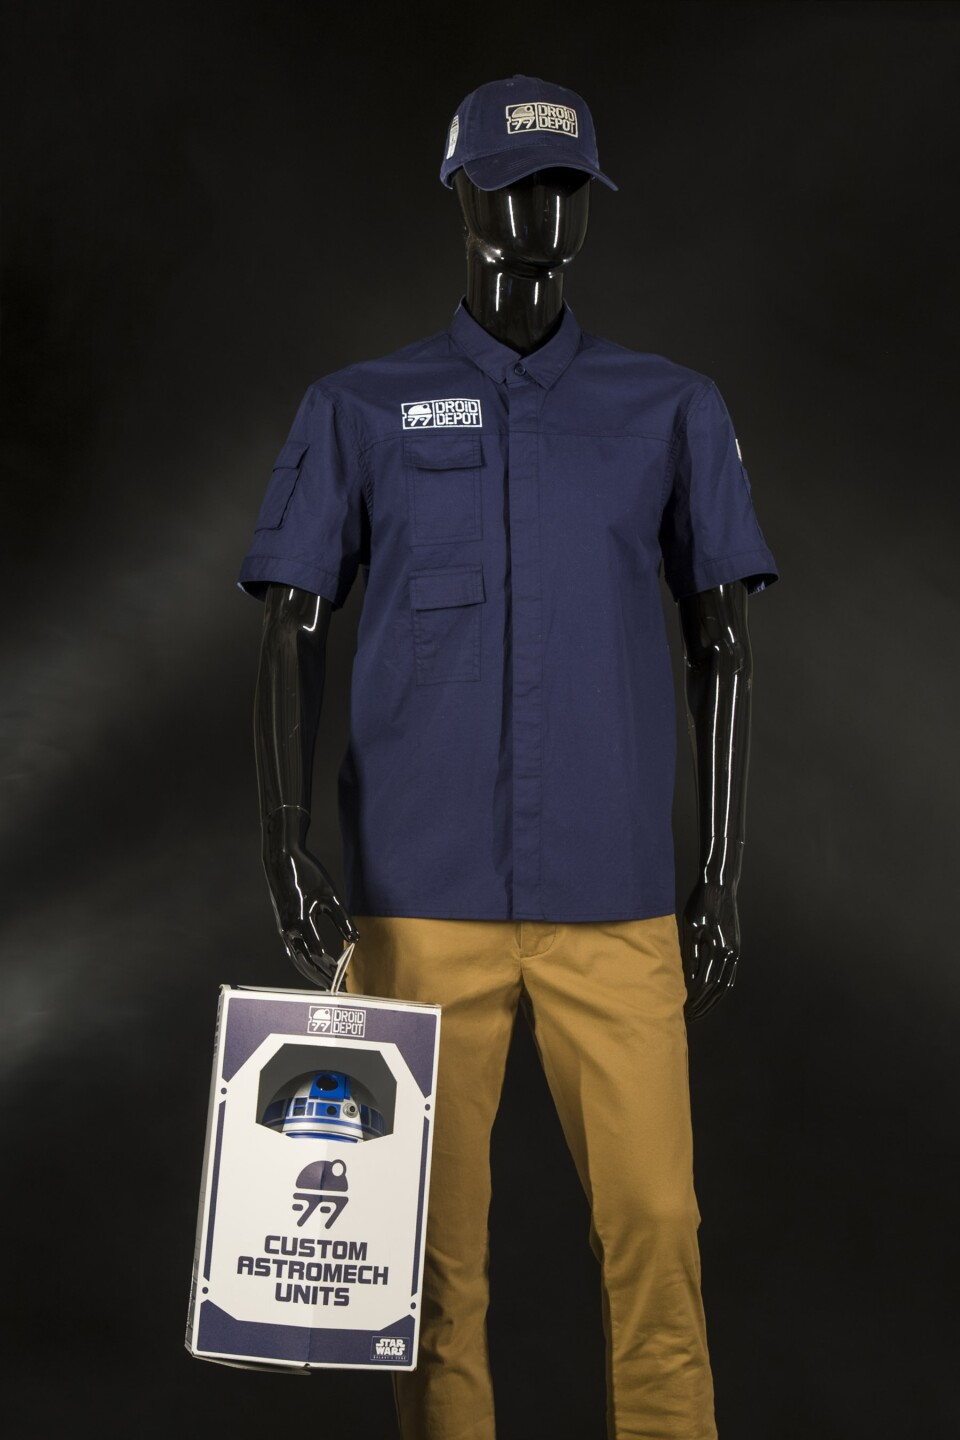 Star Wars: GalaxyÕs Edge Merchandise Ð Droid Apparel and Astromech Units